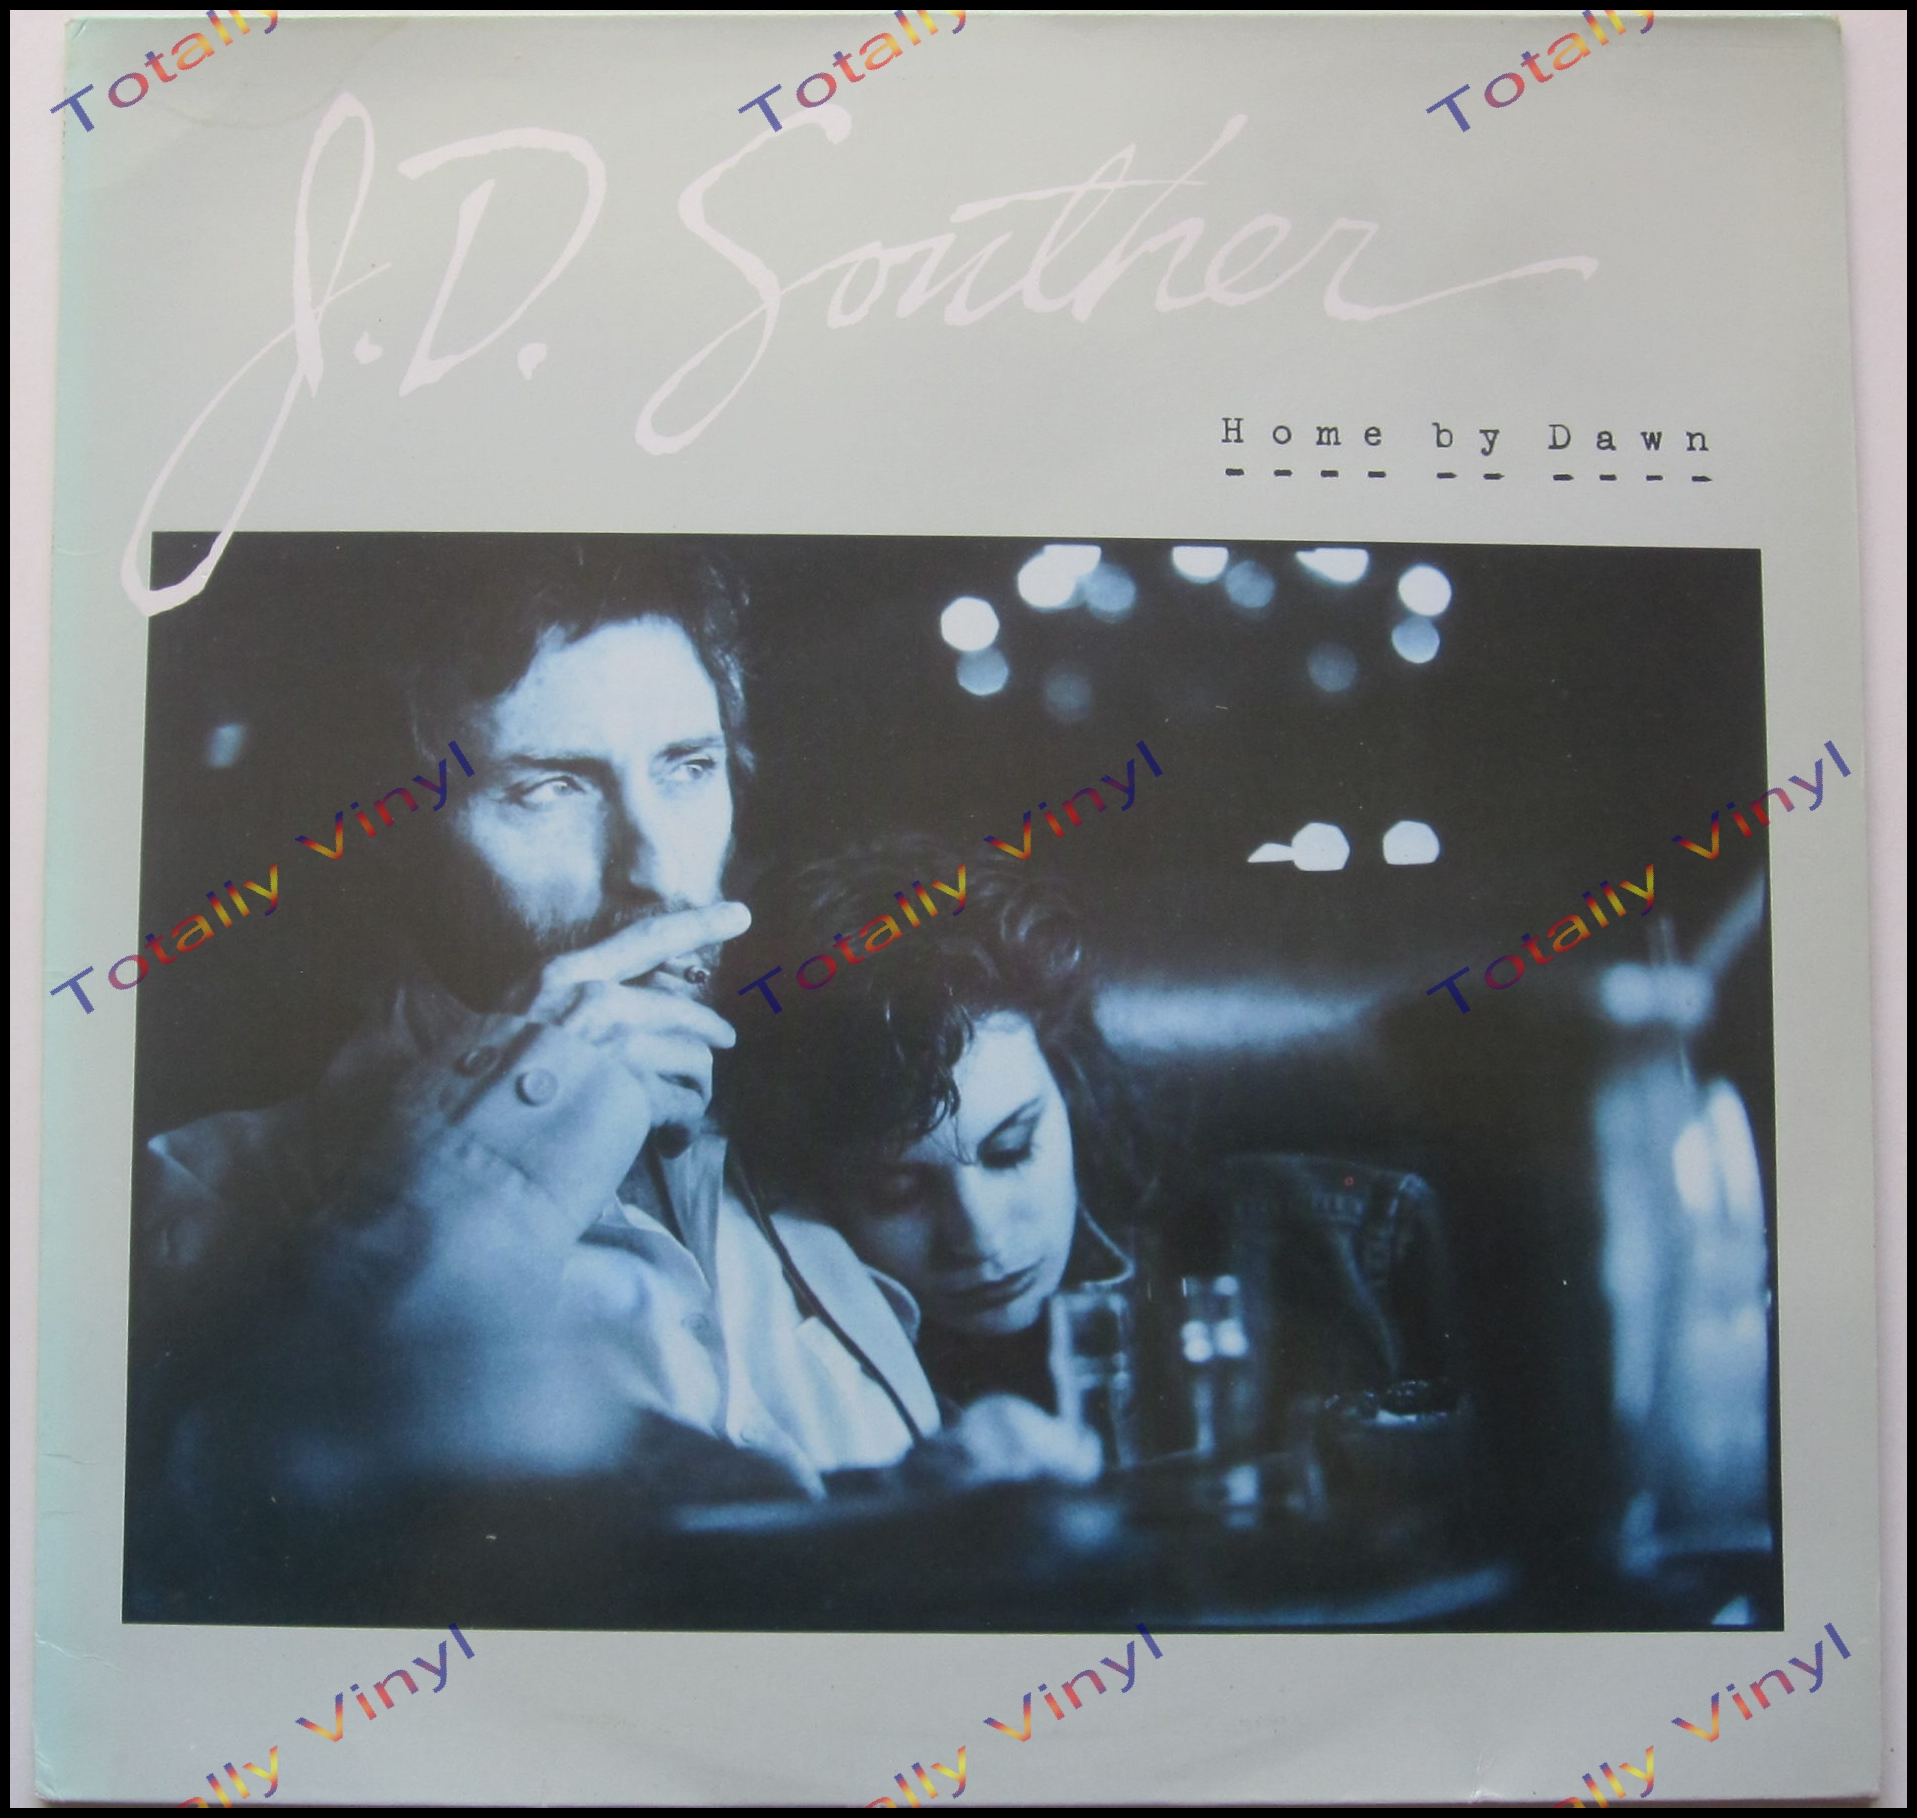 Totally Vinyl Records || Souther, J D - Home by dawn LP